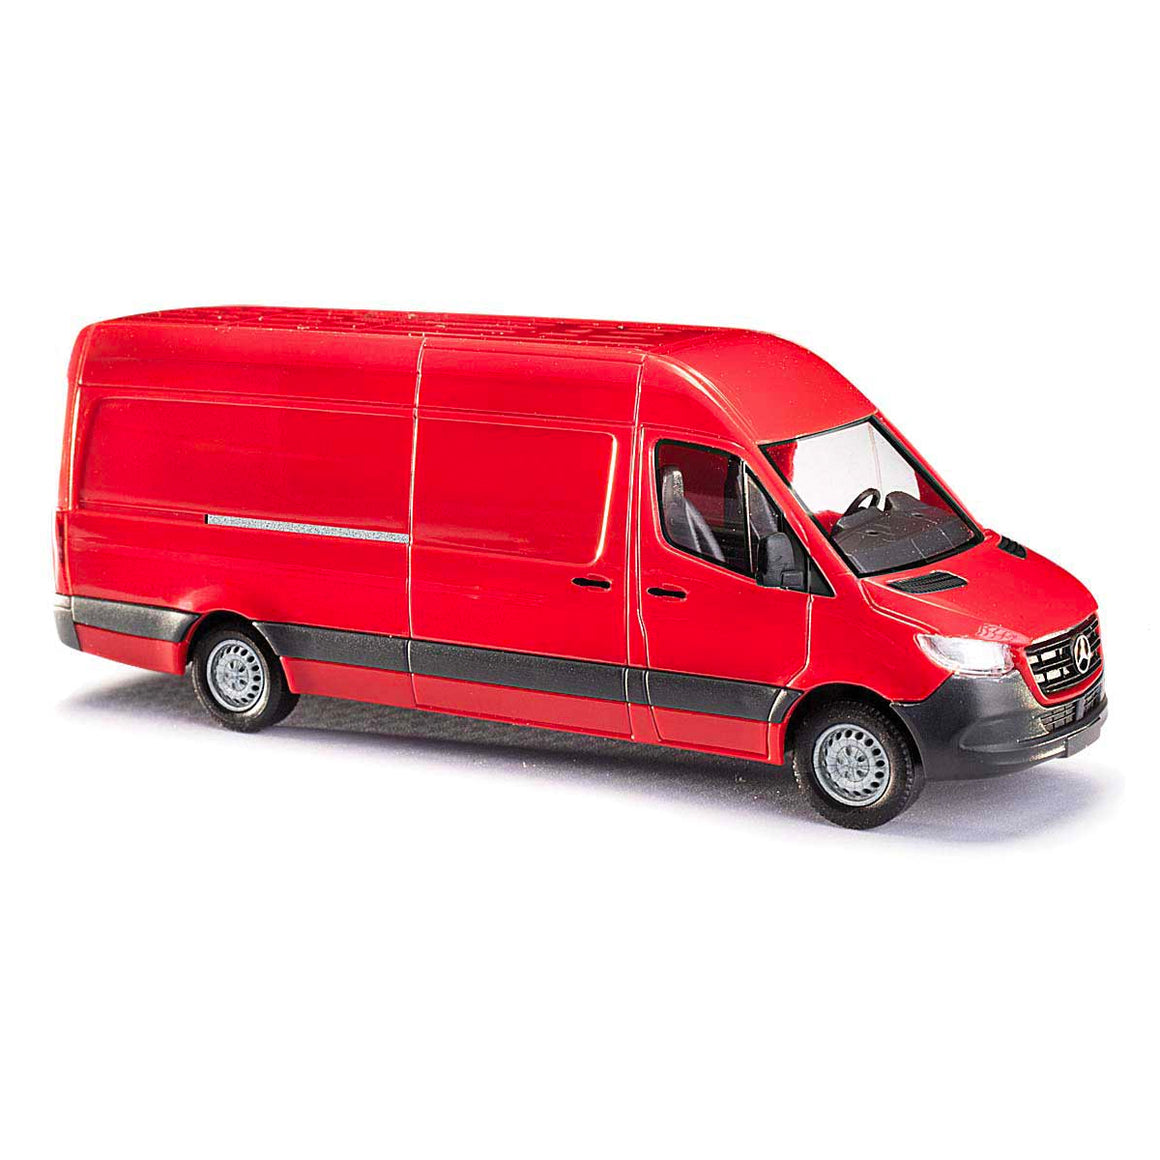 HO Scale: Mercedes Benz Sprinter Van - Red